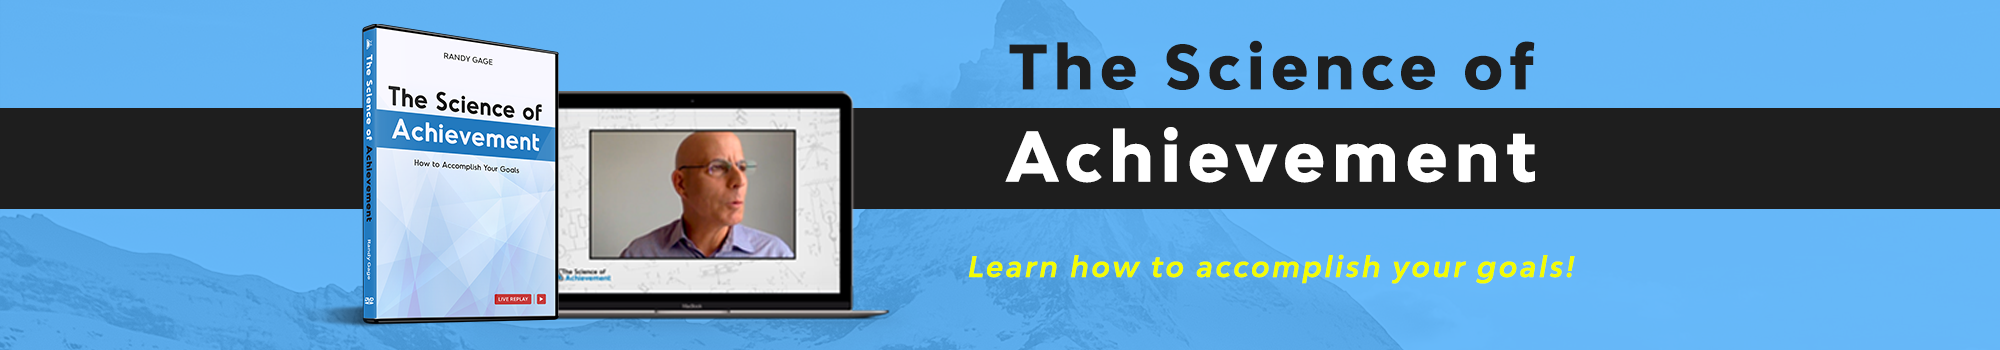 The Science of Achievement by Randy Gage